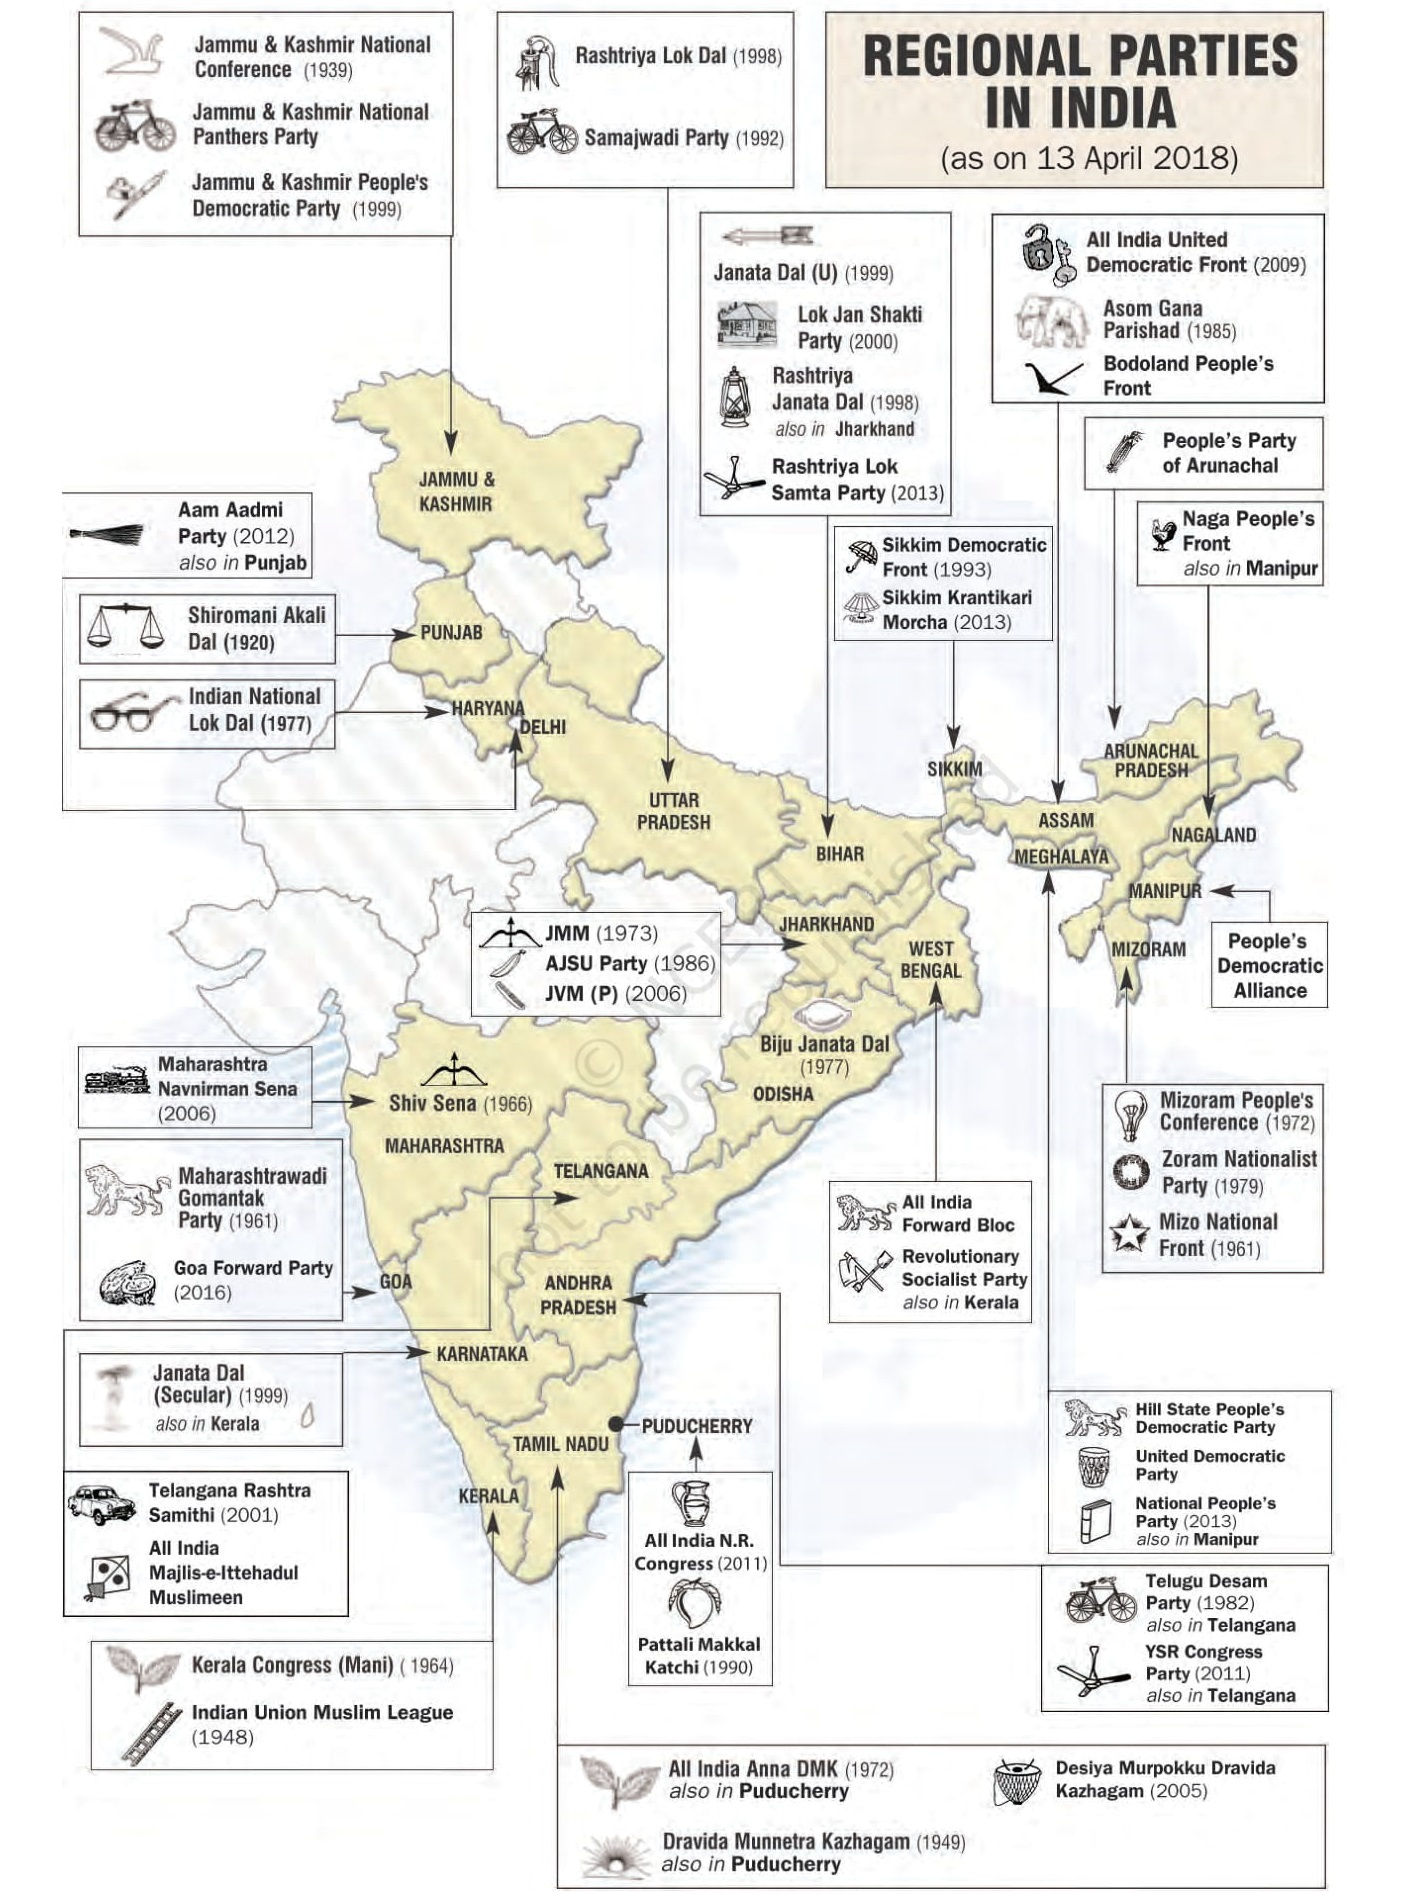 Regional Parties in India (as on 13th April 2018)